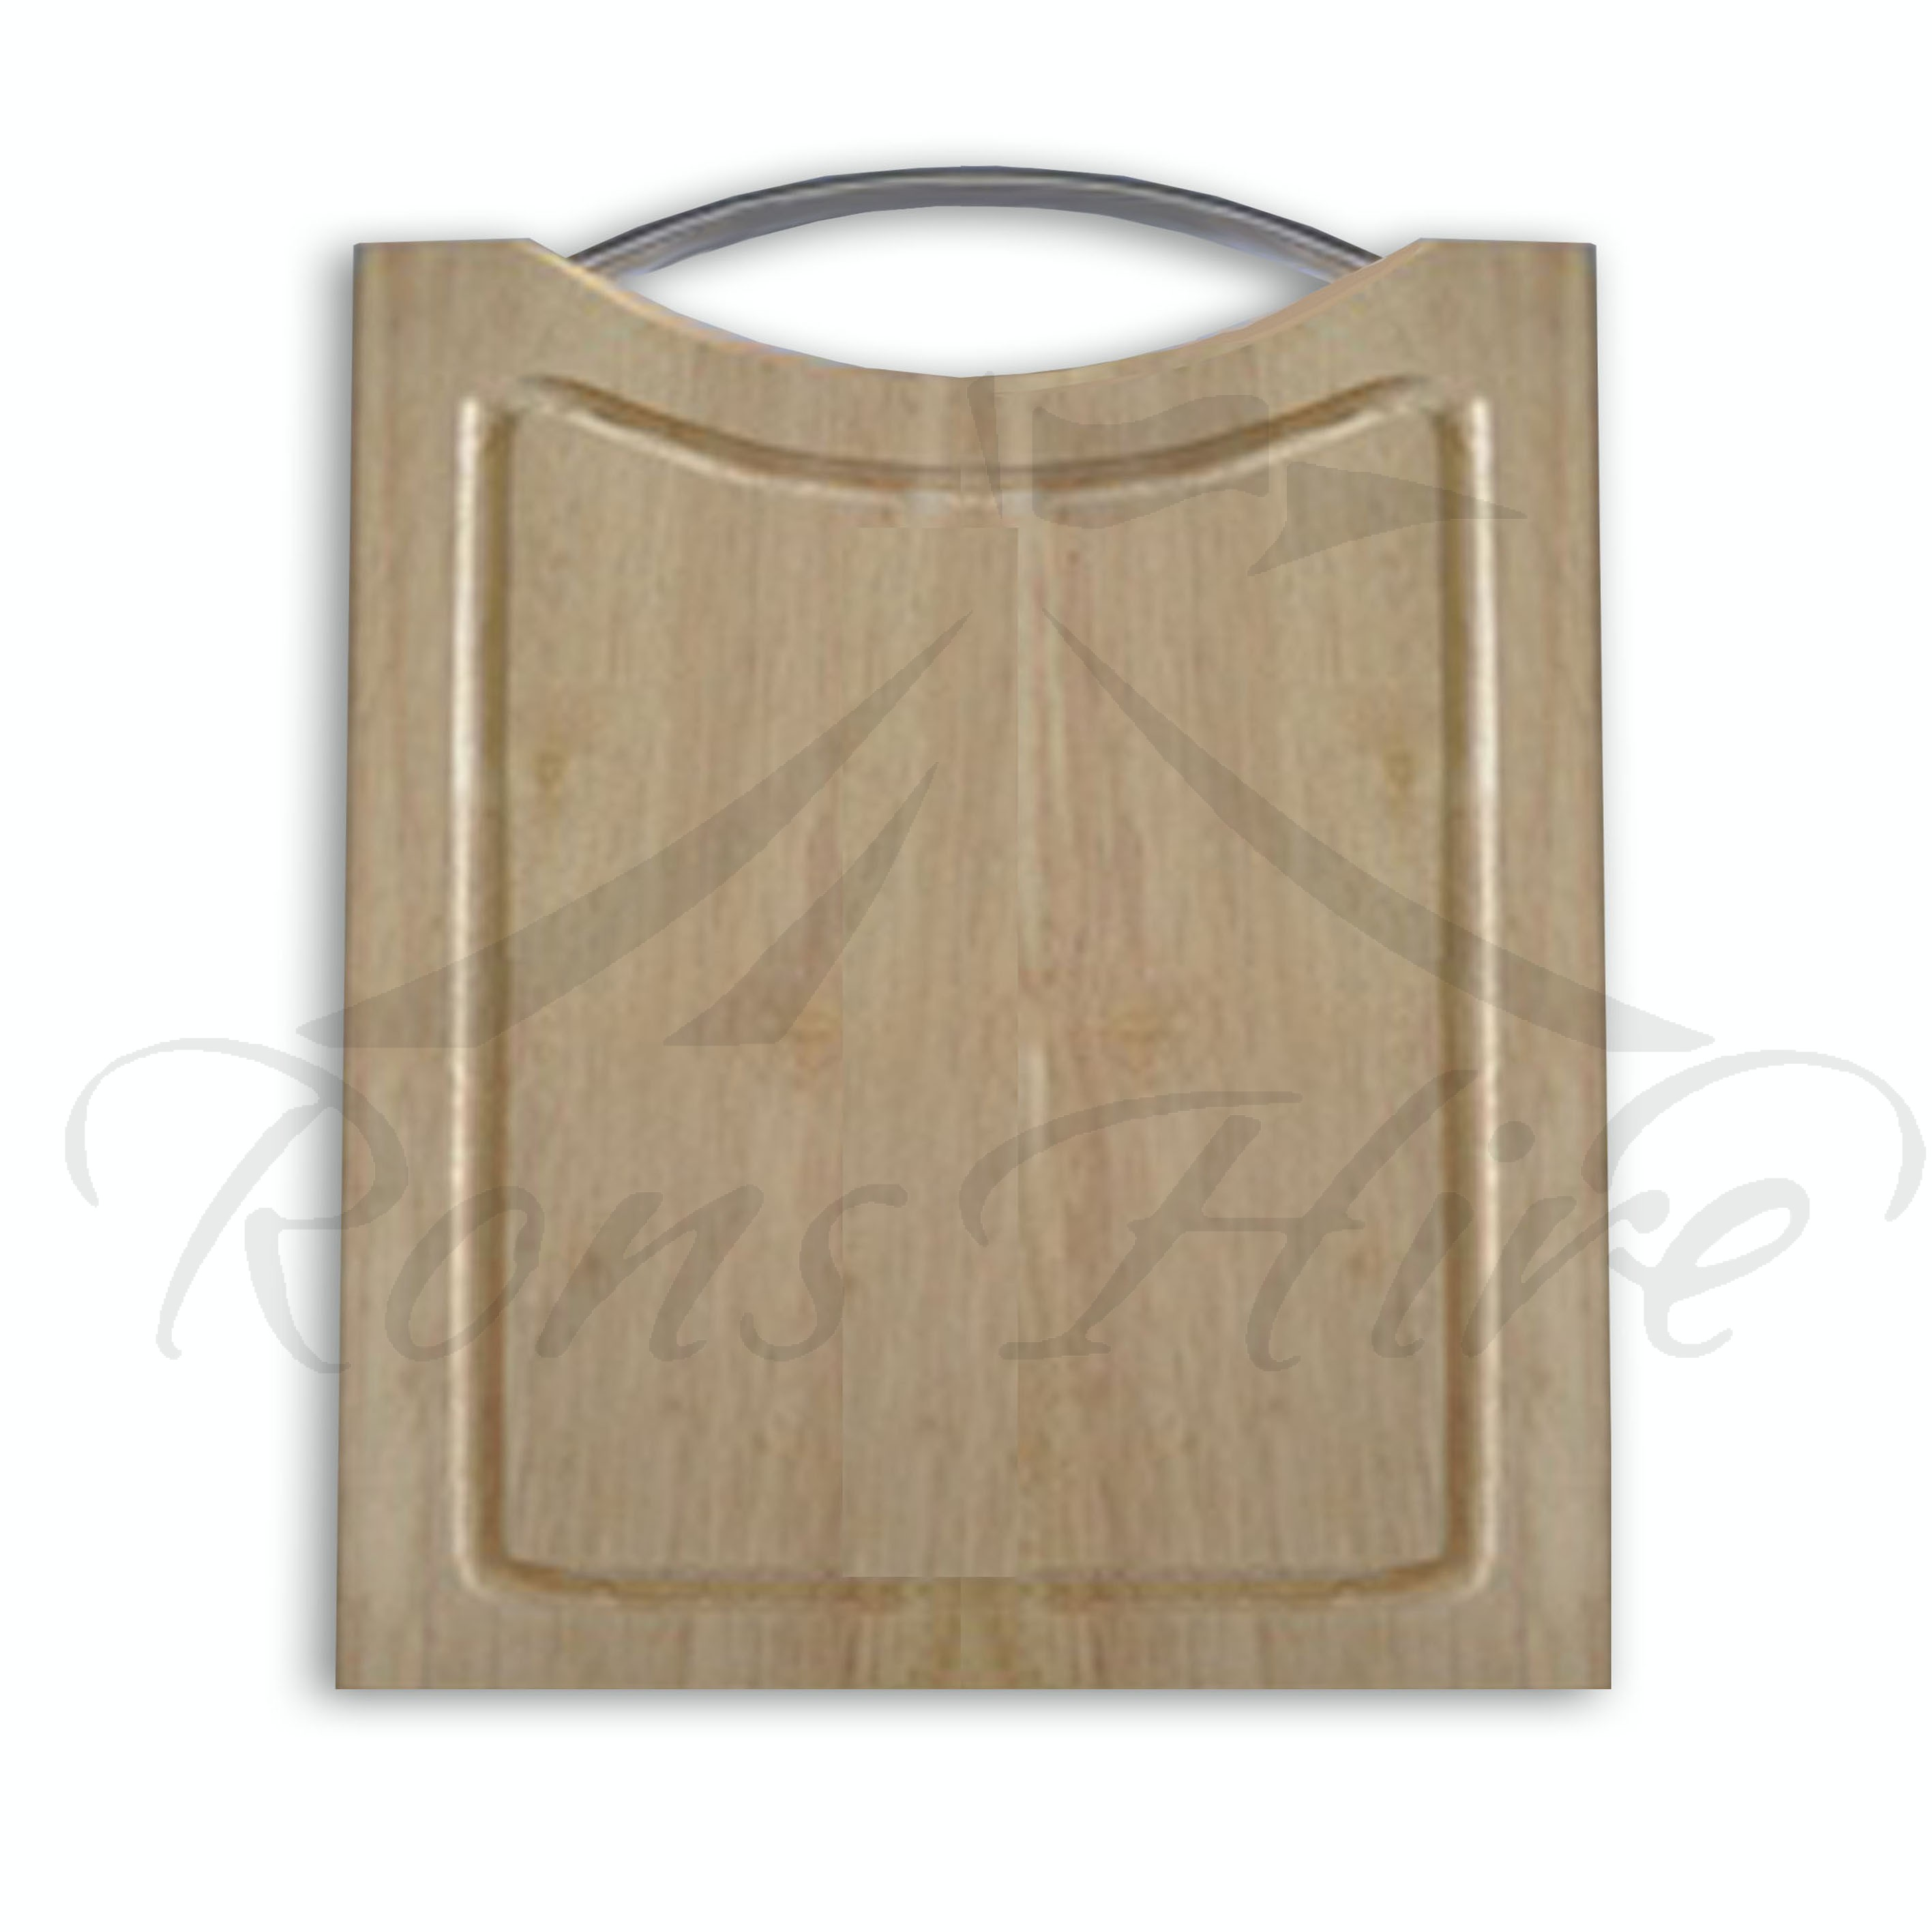 Board - Brown Wooden Plain Small Square Cheese Board